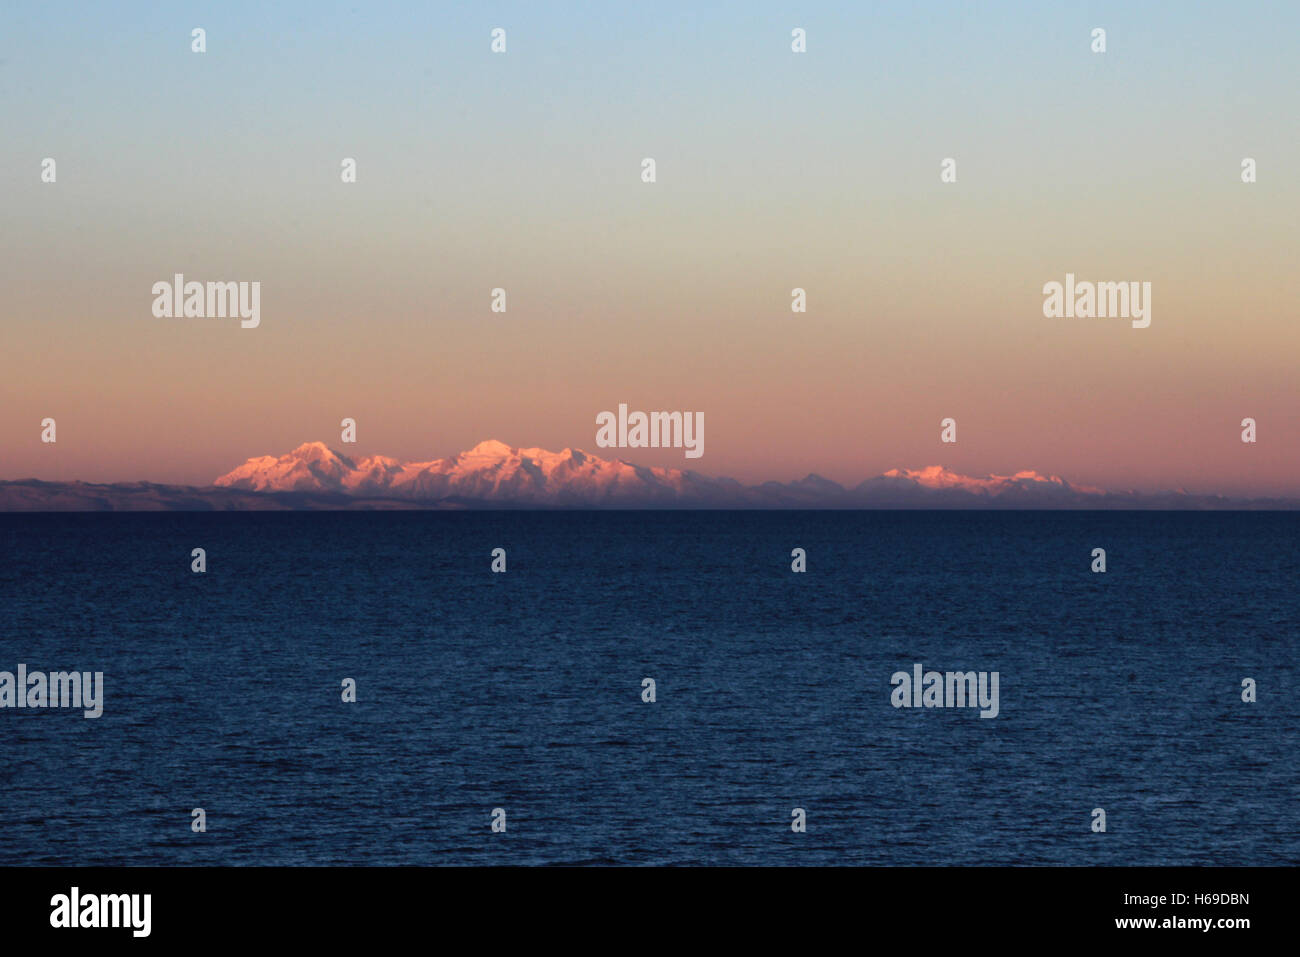 Cordillera real mountain range at sunset behind Titicaca lake - Stock Image